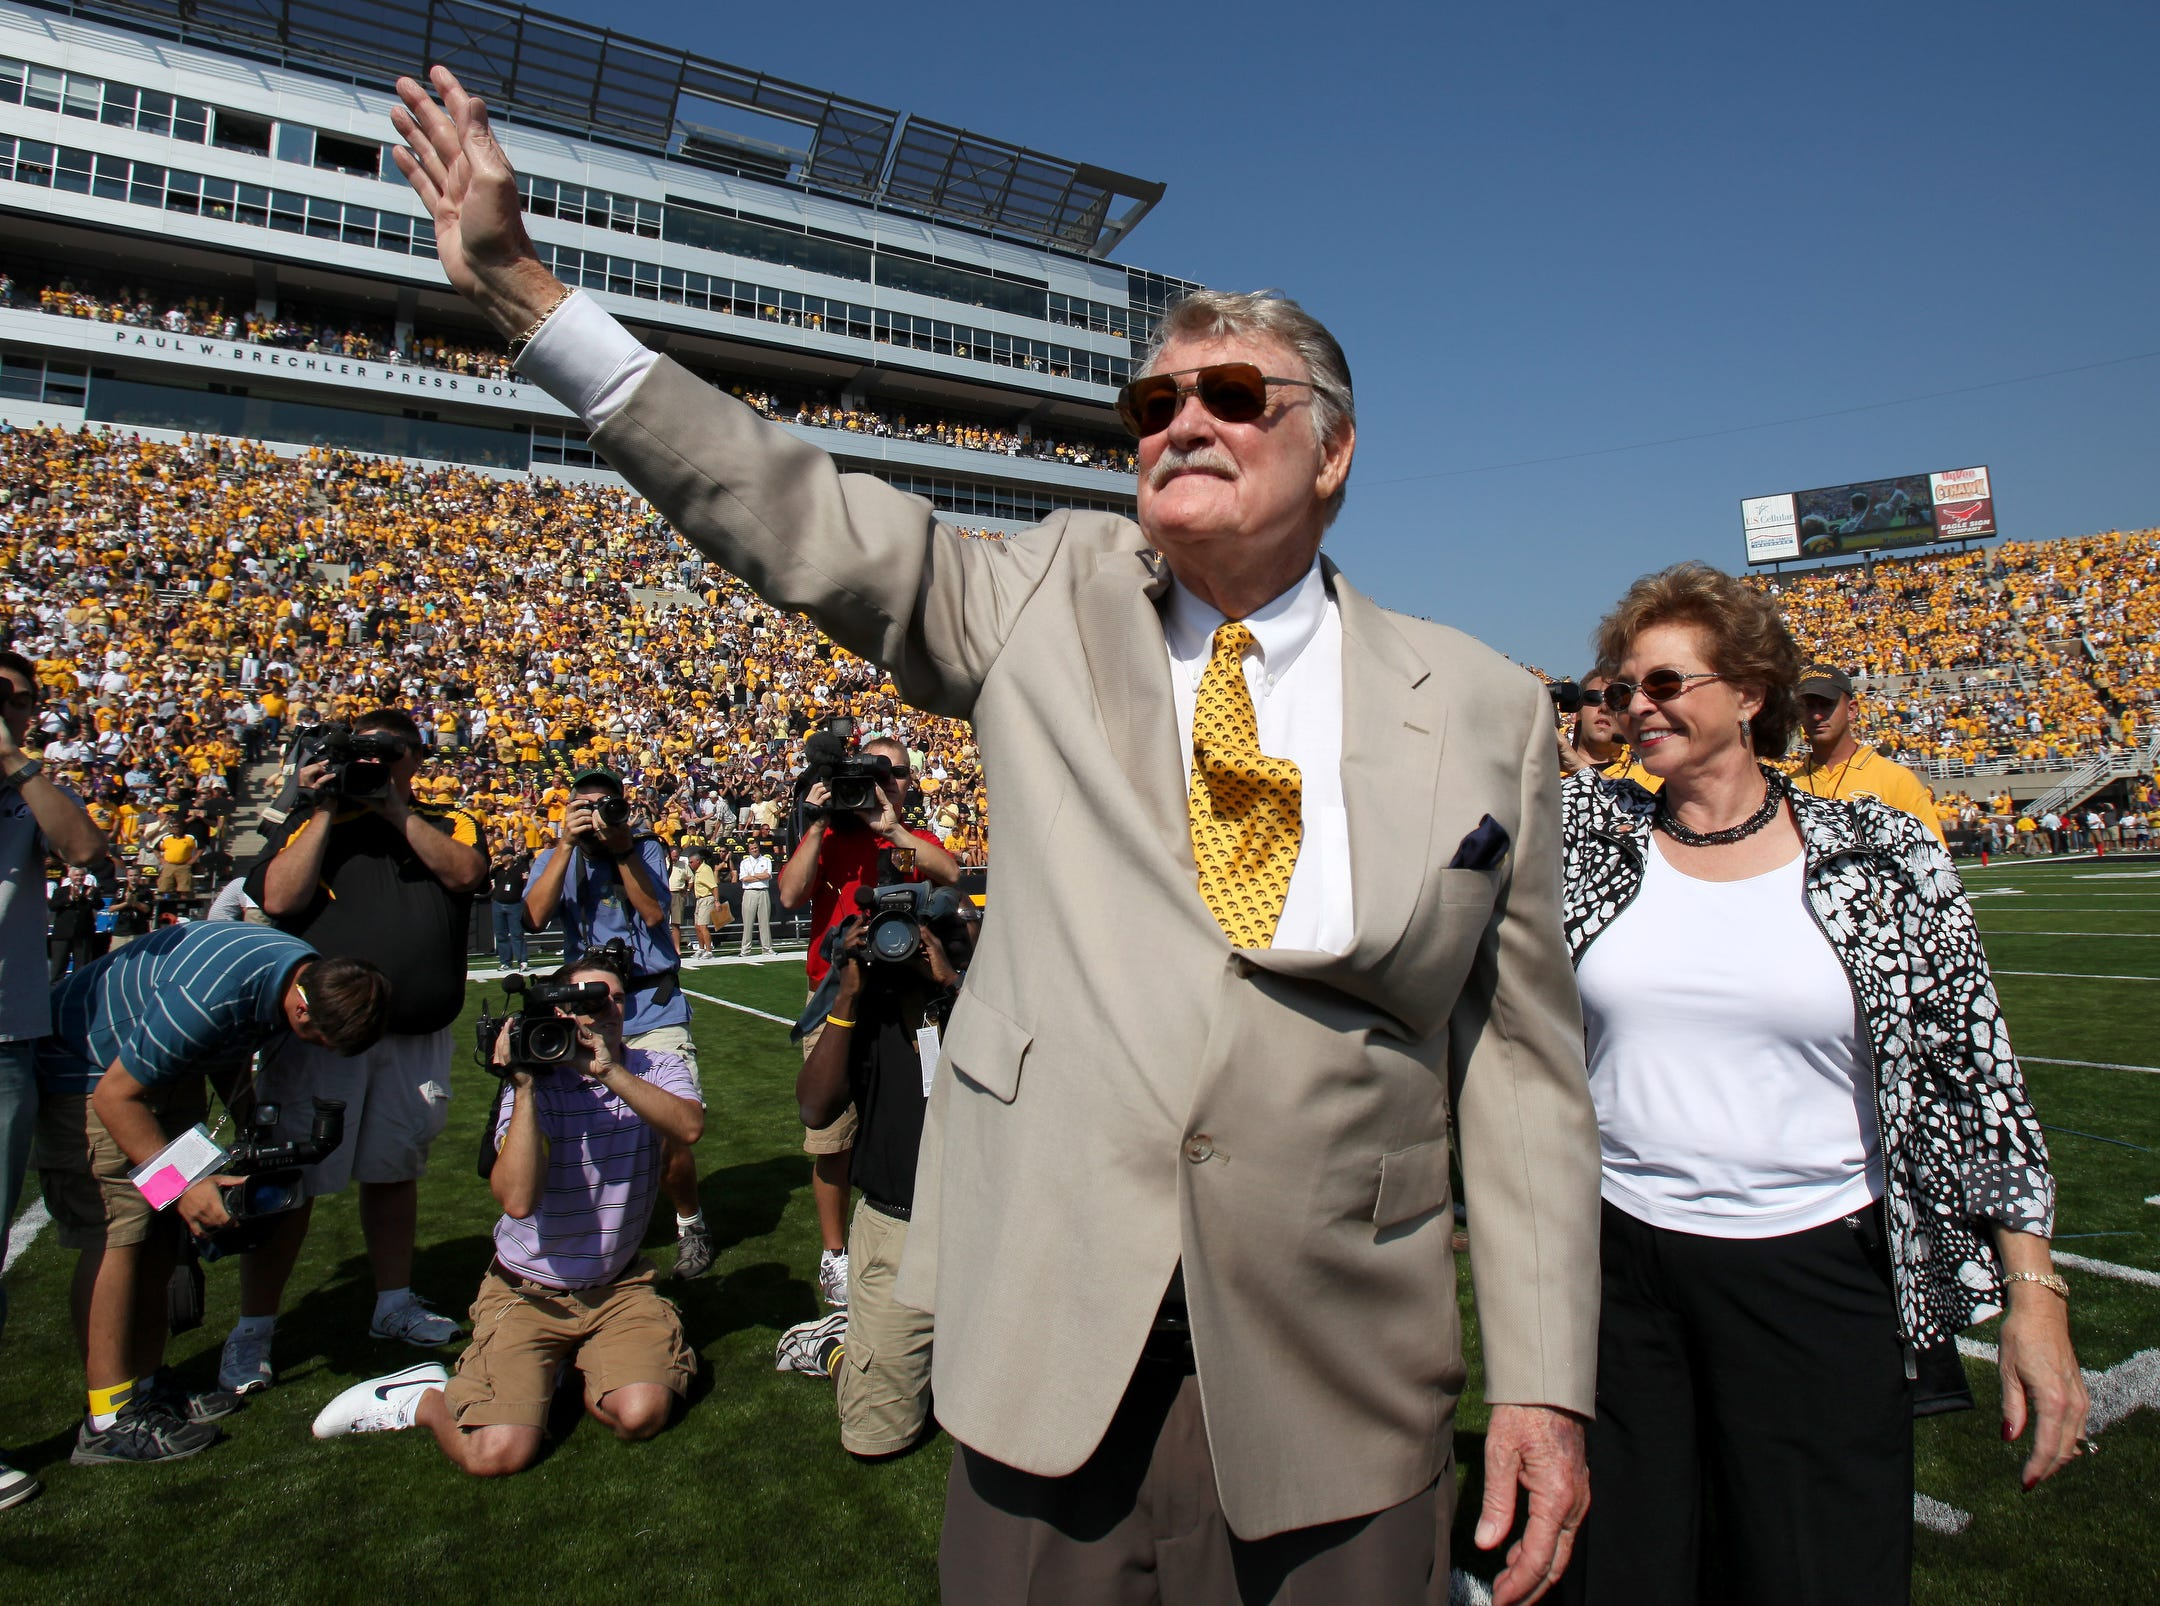 Former Iowa football coach Hayden Fry waves to the crowd with his wife, Shirley, at his side prior to kickoff Sept. 5, 2009 in Iowa City.